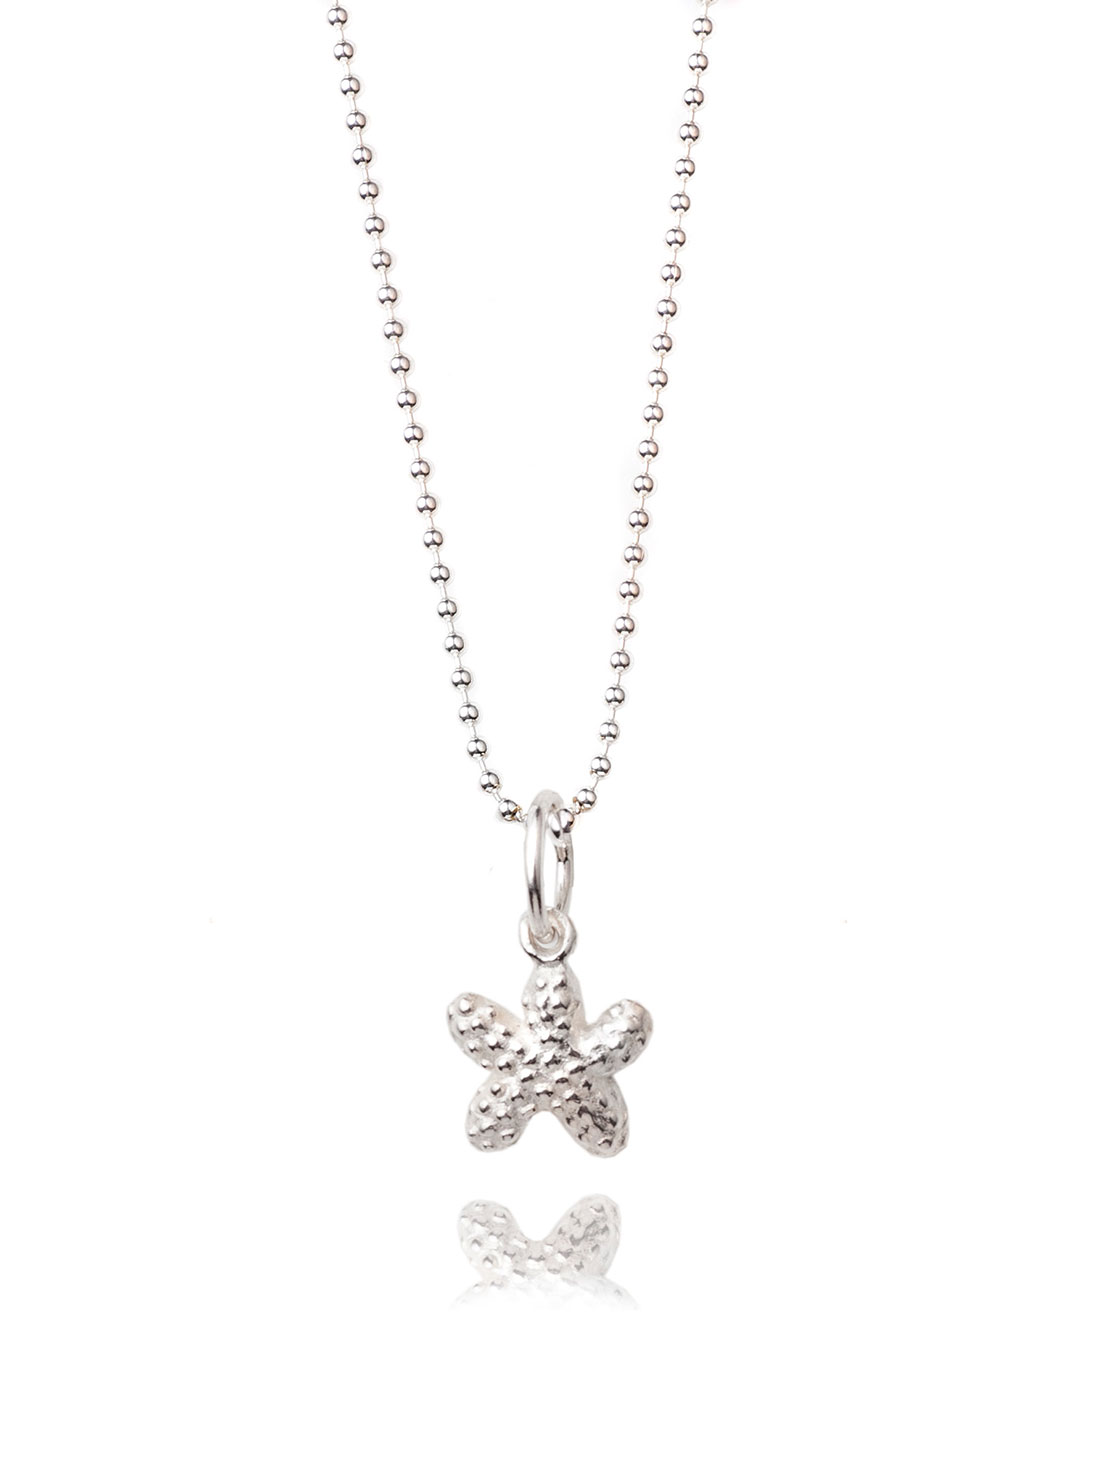 Tiny Silver Starfish Necklace